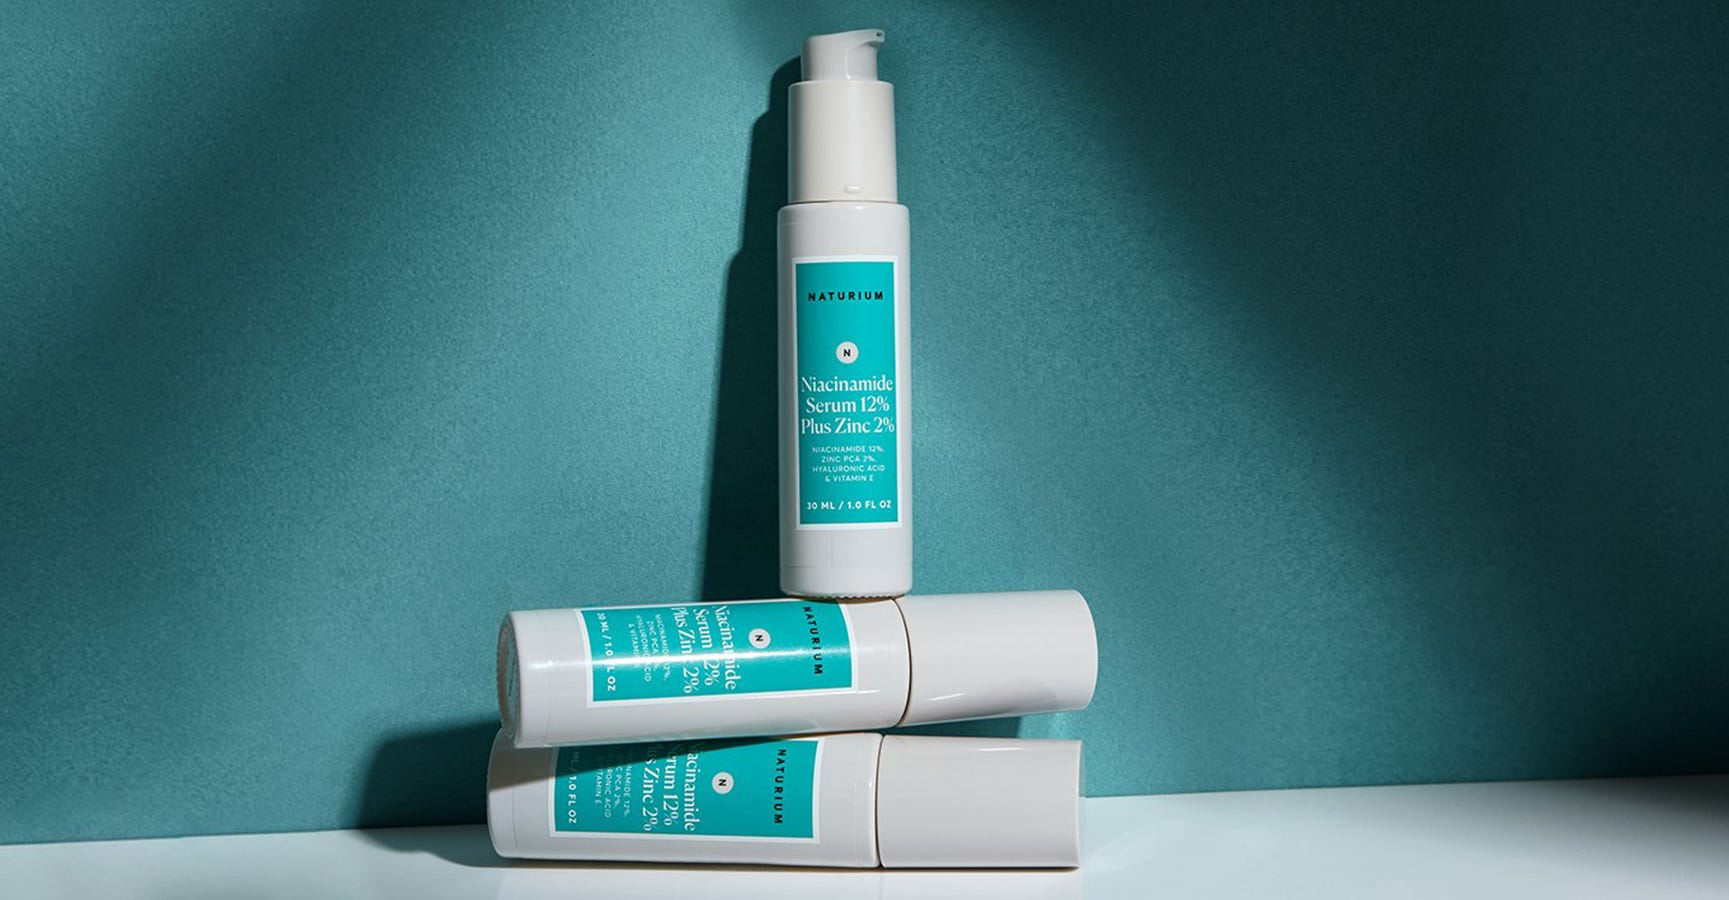 Product shot of a bottle of niacinamide by Naturium standing over two horizontally stacked bottles of the same product in front of a blue background, under the spotlight